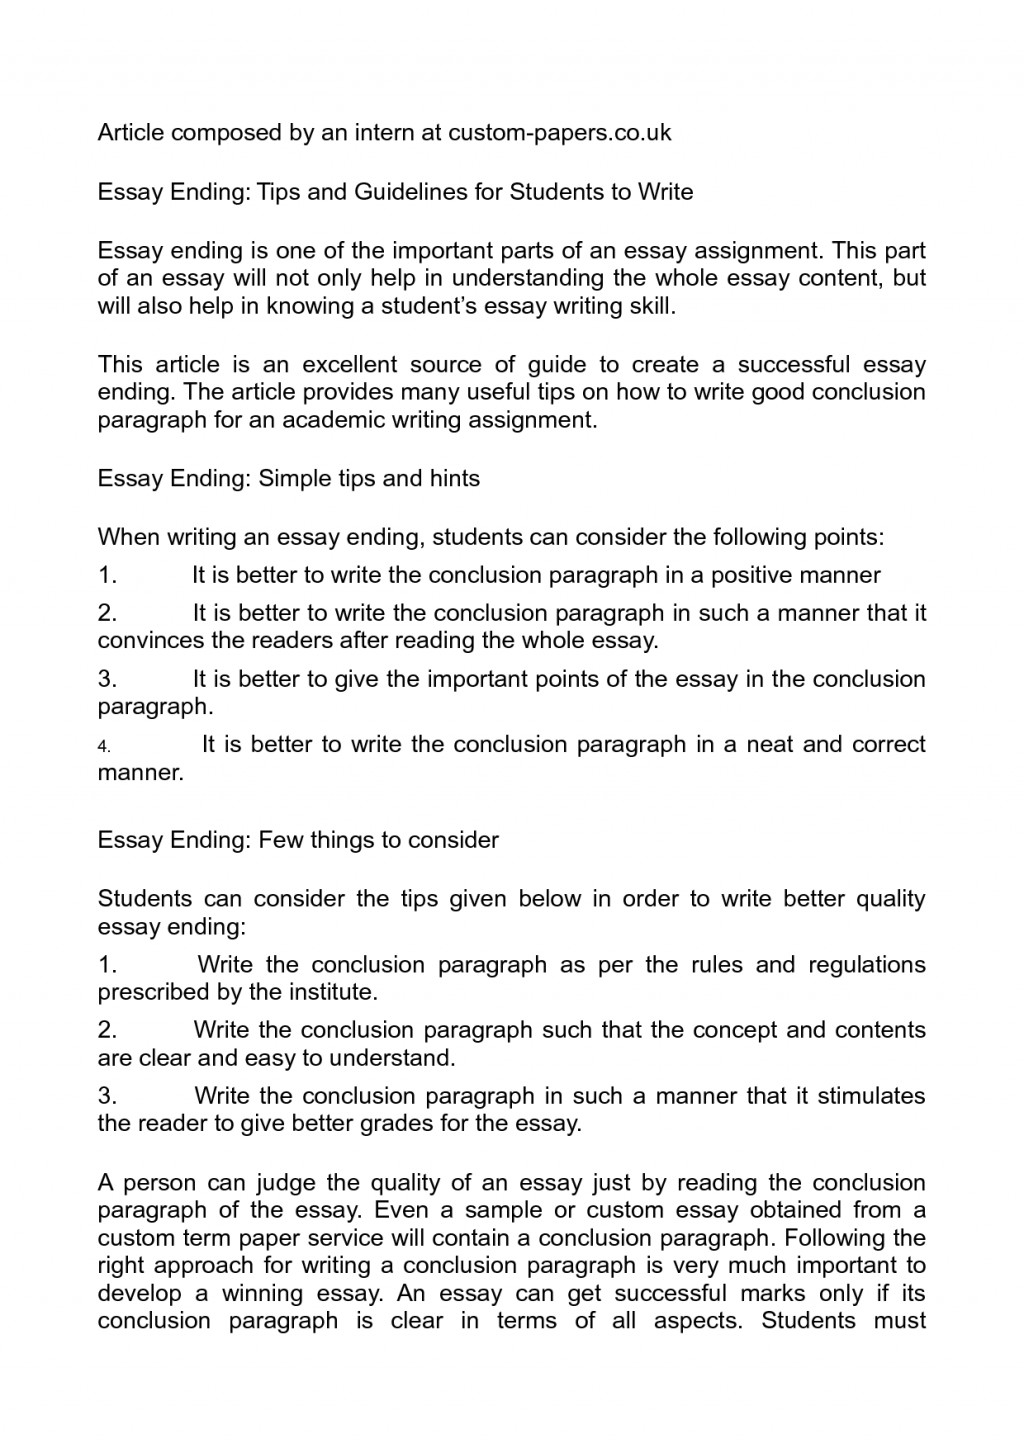 024 Grabber Essay Ending An Pzwnxs Of Grabbers For Essays Attention Expository Persuasive Imposing Good Interesting College Large